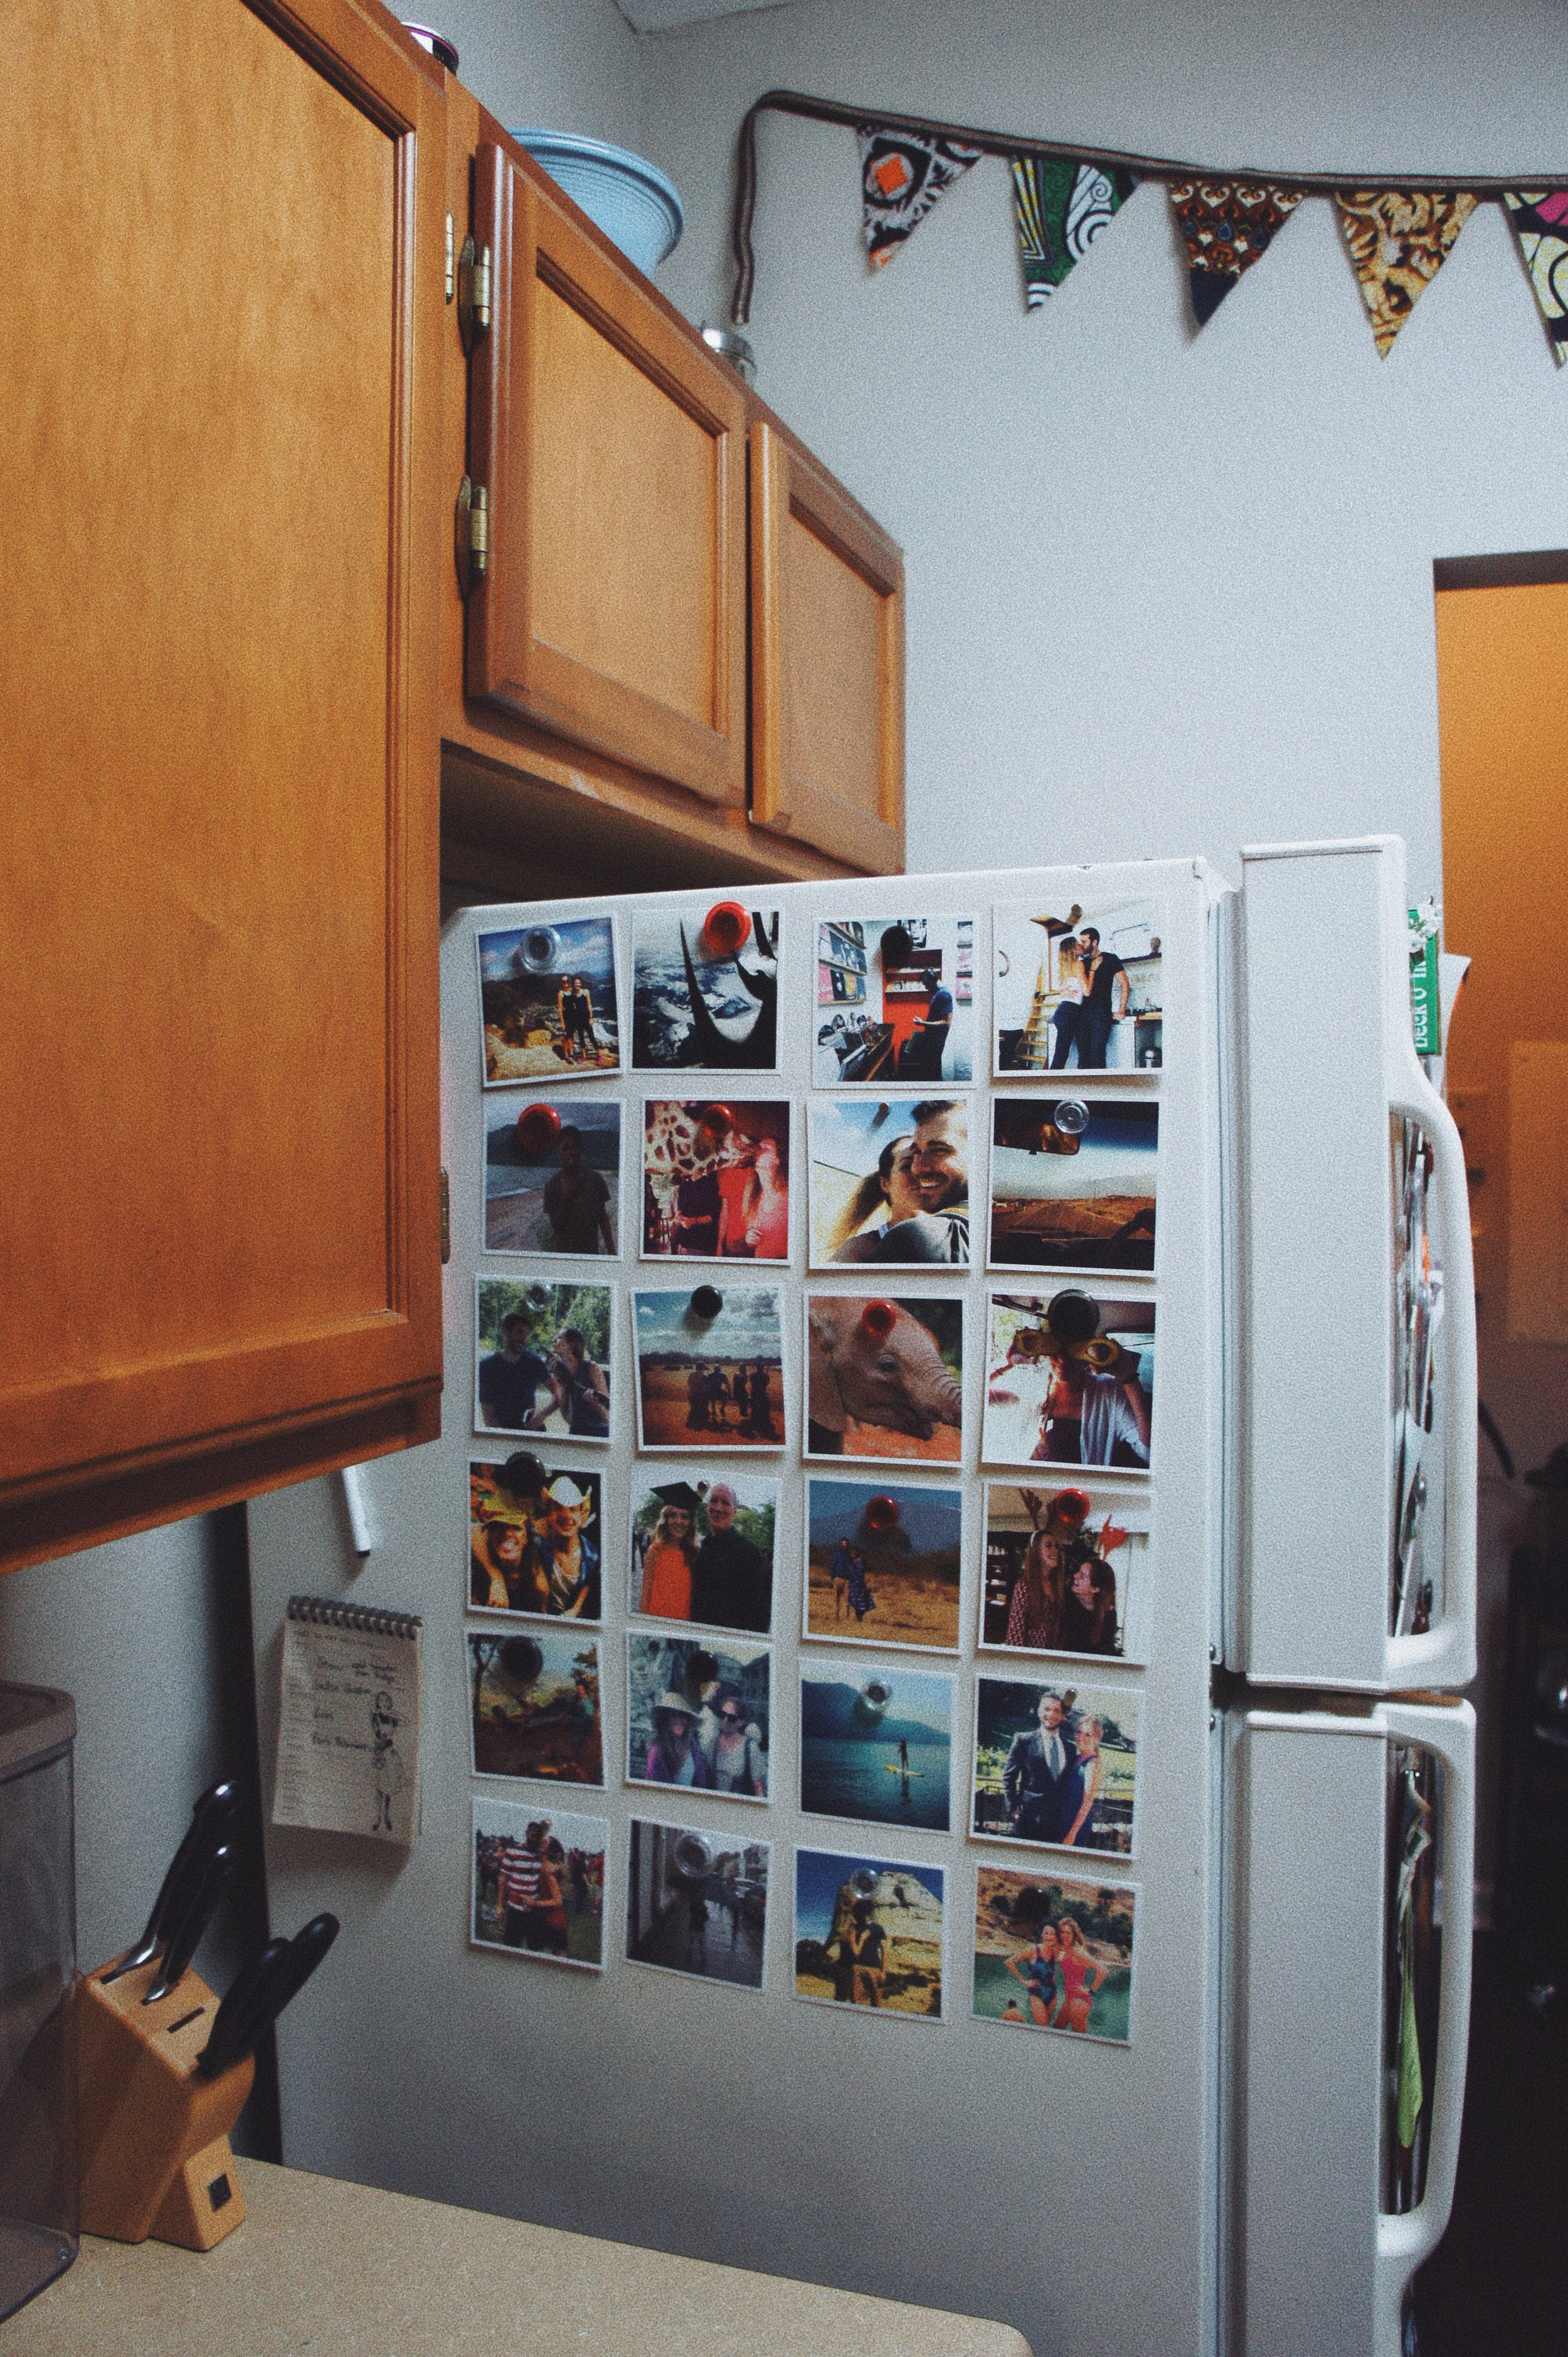 - Our kitchen isn't much to write home about— it's small and practical and we're in a rental so we can't do much in there anyway! But, I love this little photo wall that we made on the side of our fridge, with lots of memories from 2014/15 when I had them printed. I have been on a huge organizing kick and am adding lots of bins to our pantry. My next purchase is going to be this tea box from Amazon, I think we'll need a couple!